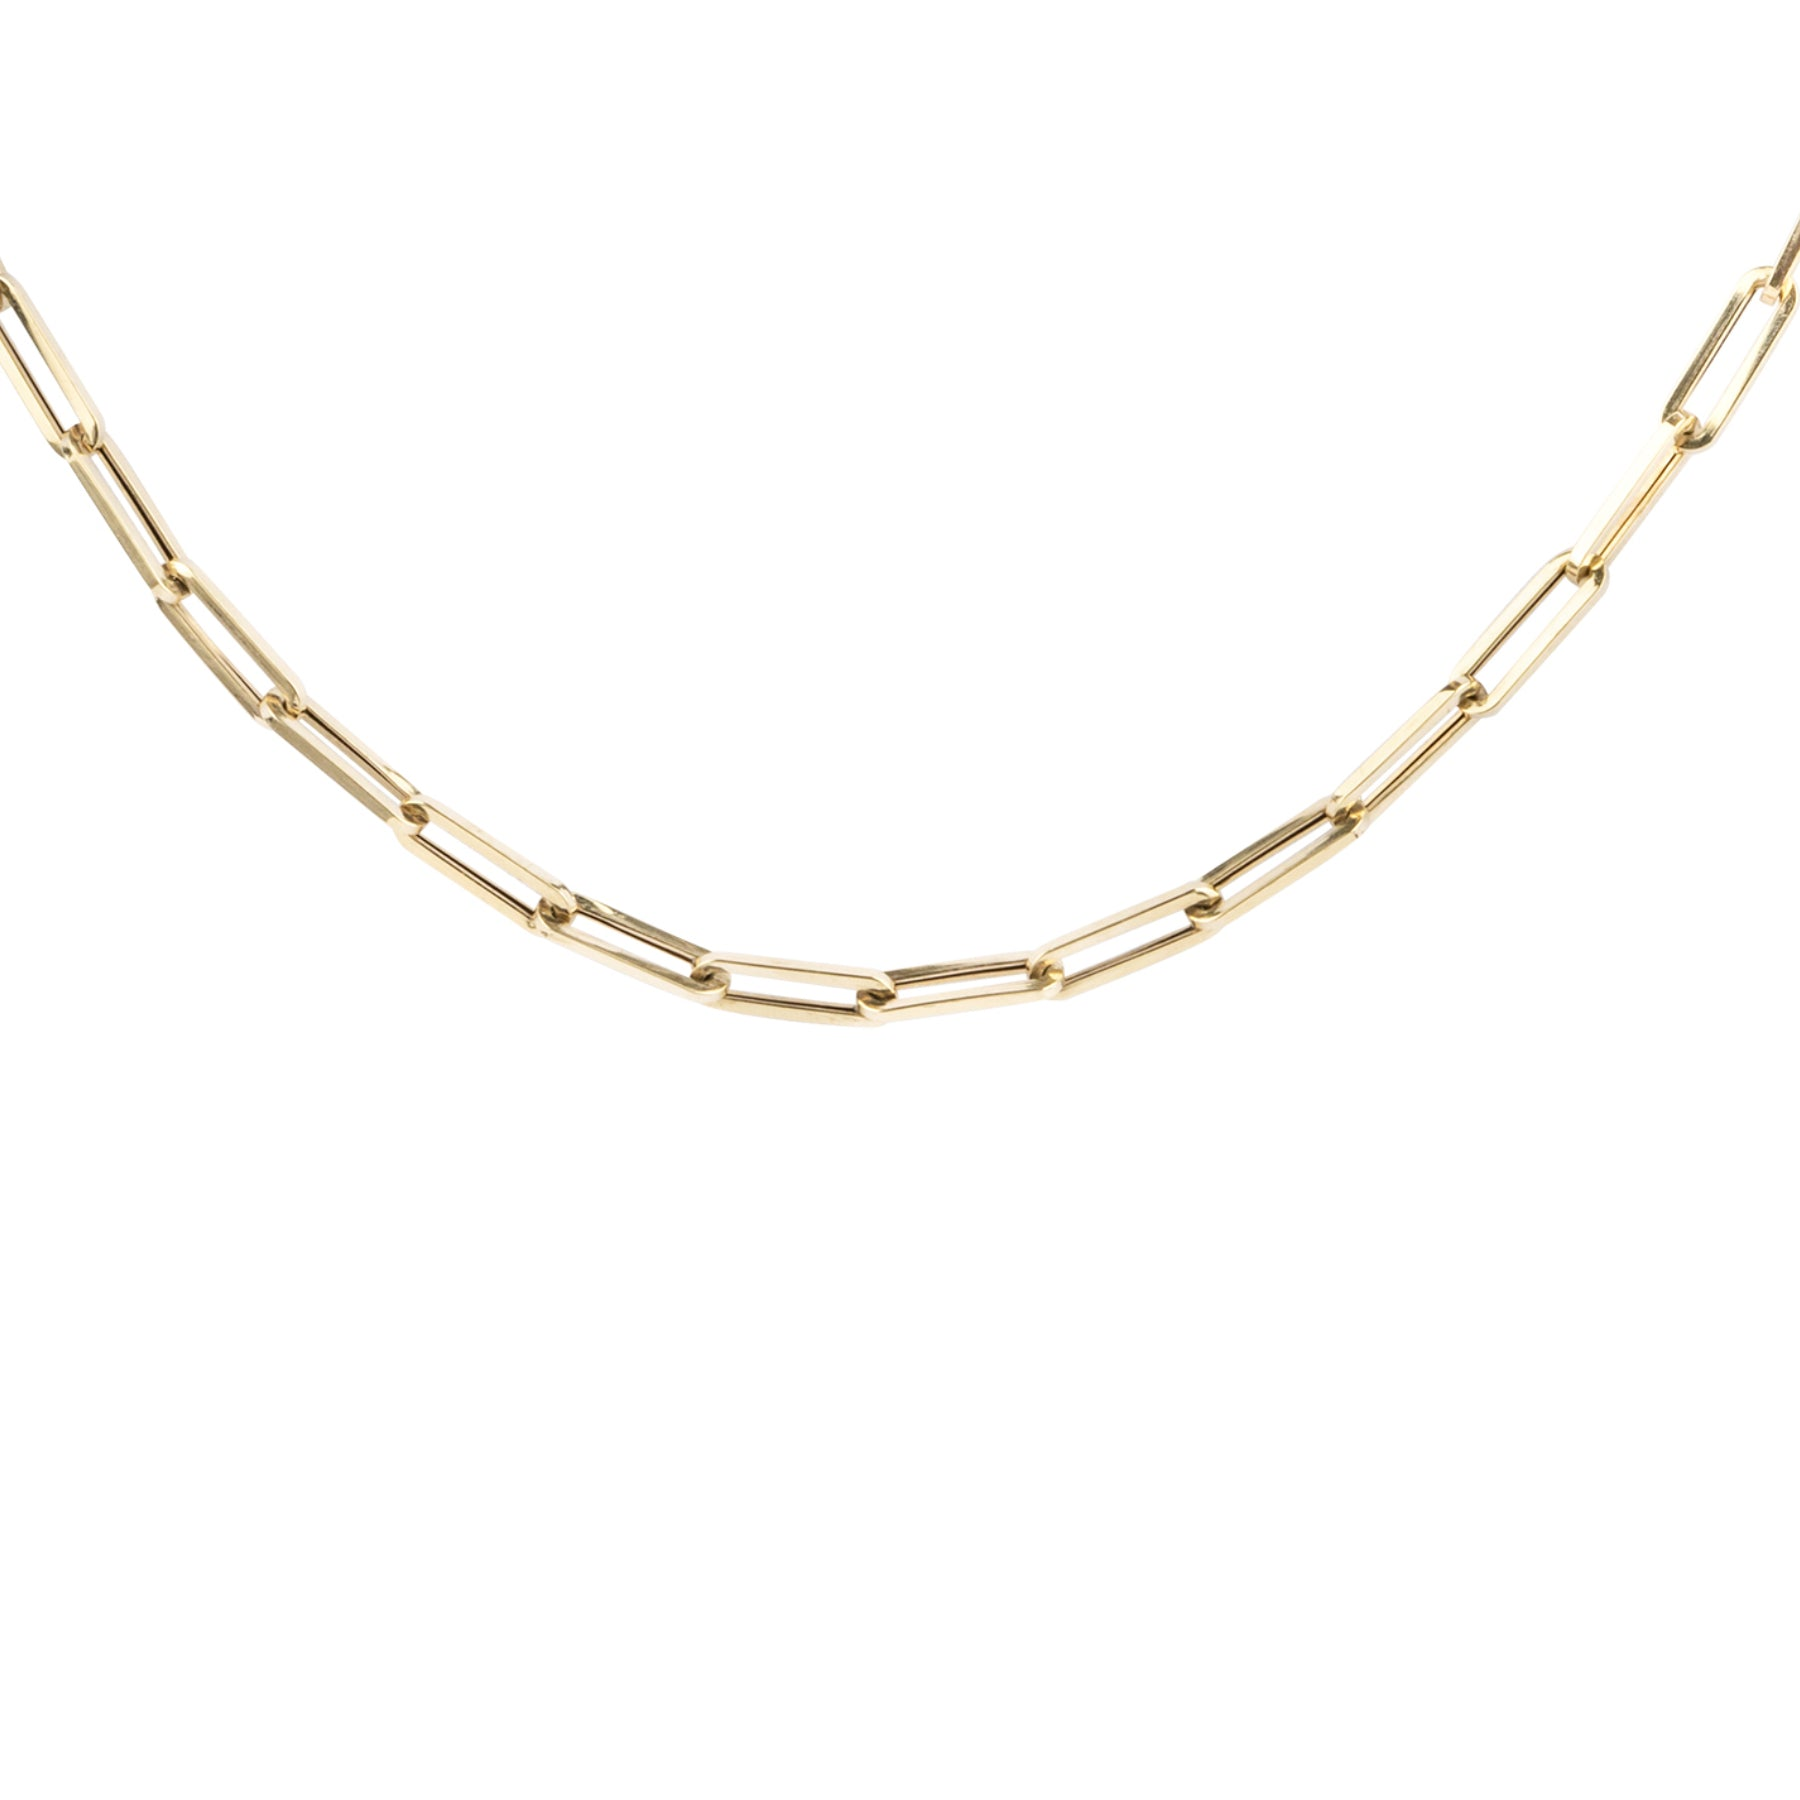 Medium Oval Chain Link Necklace